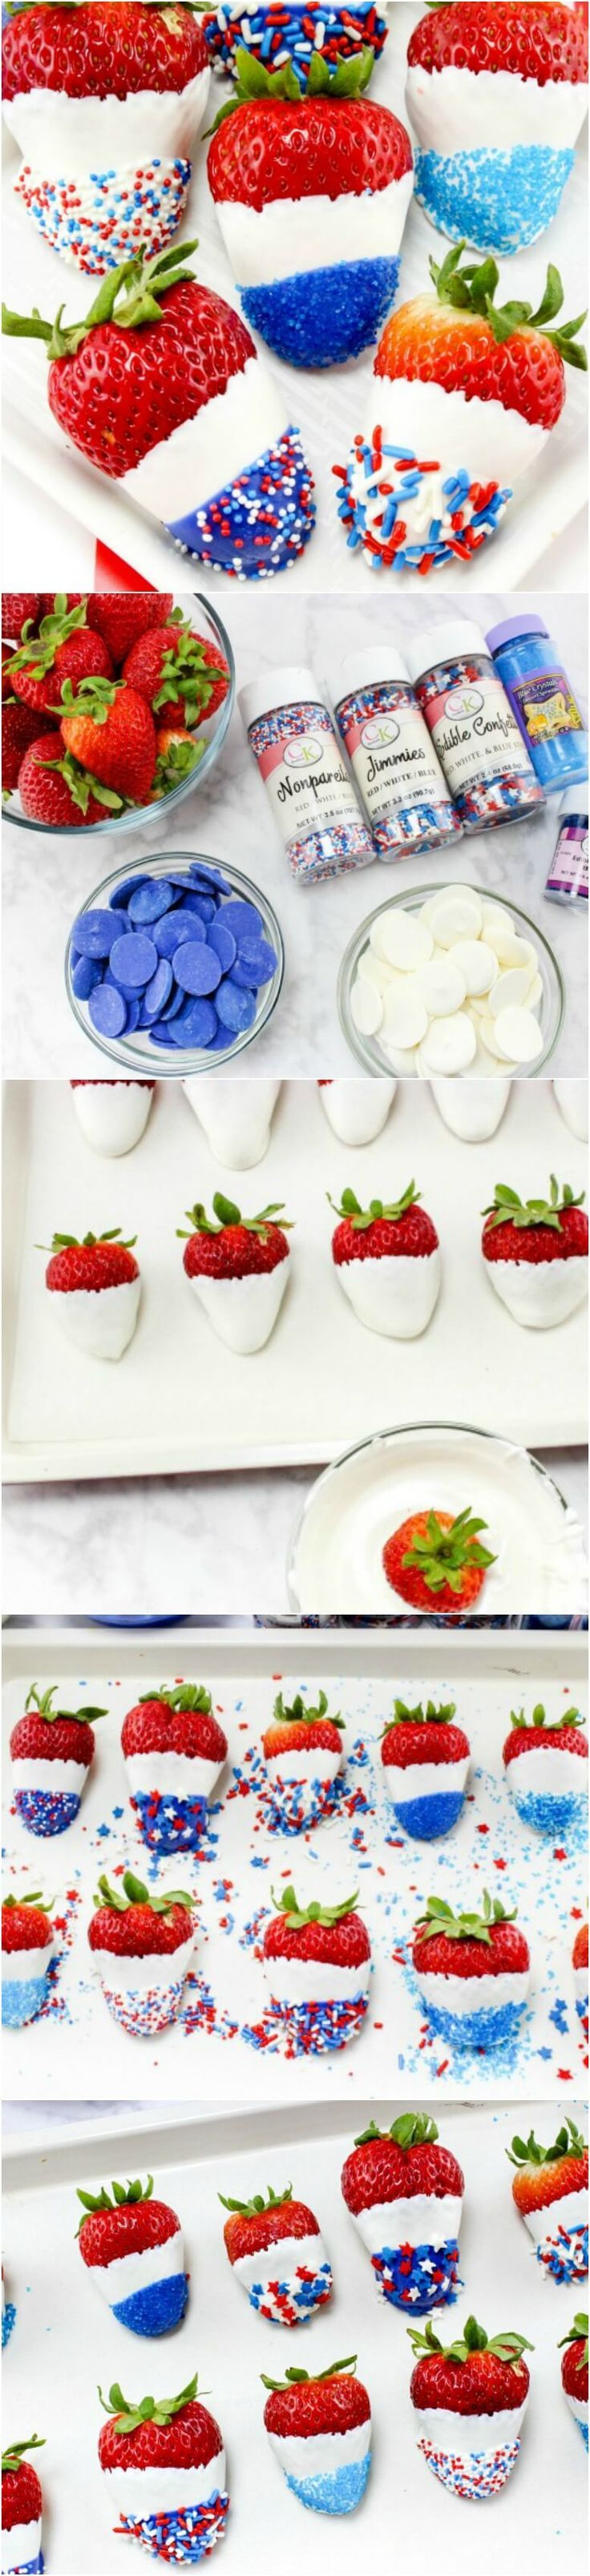 How to make Red White and Blue Chocolate Covered Strawberries (recipe for fruit cake white chocolate)